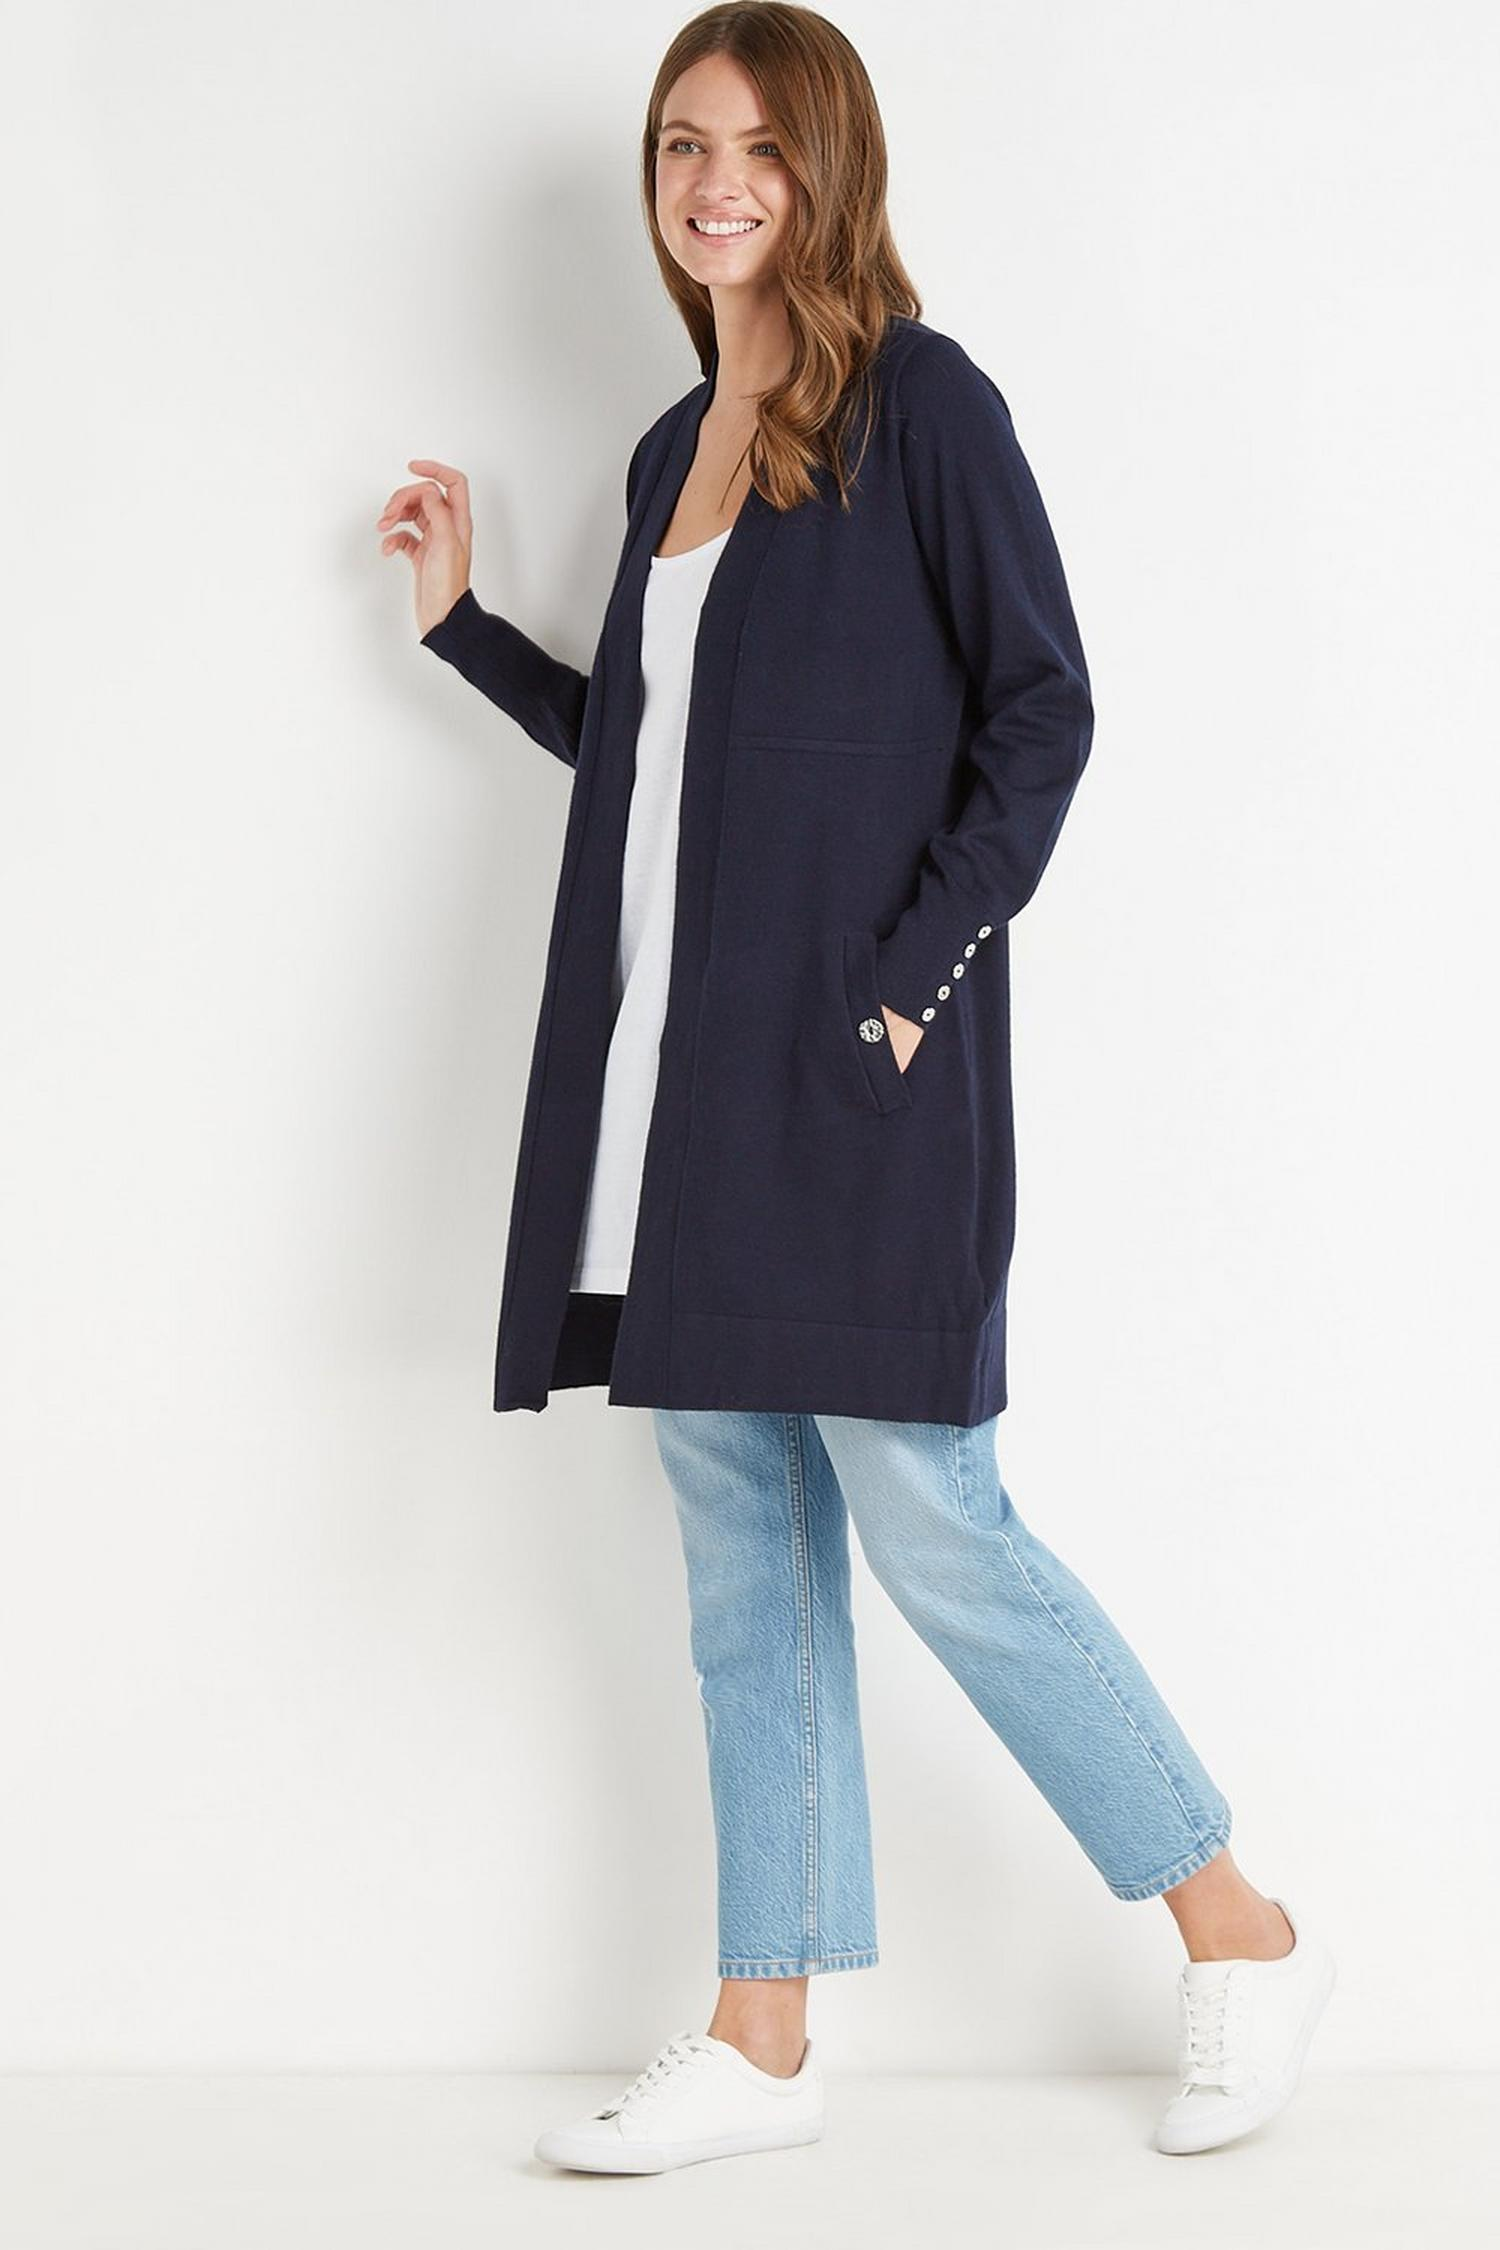 148 Navy Wool Blend Cardigan image number 1